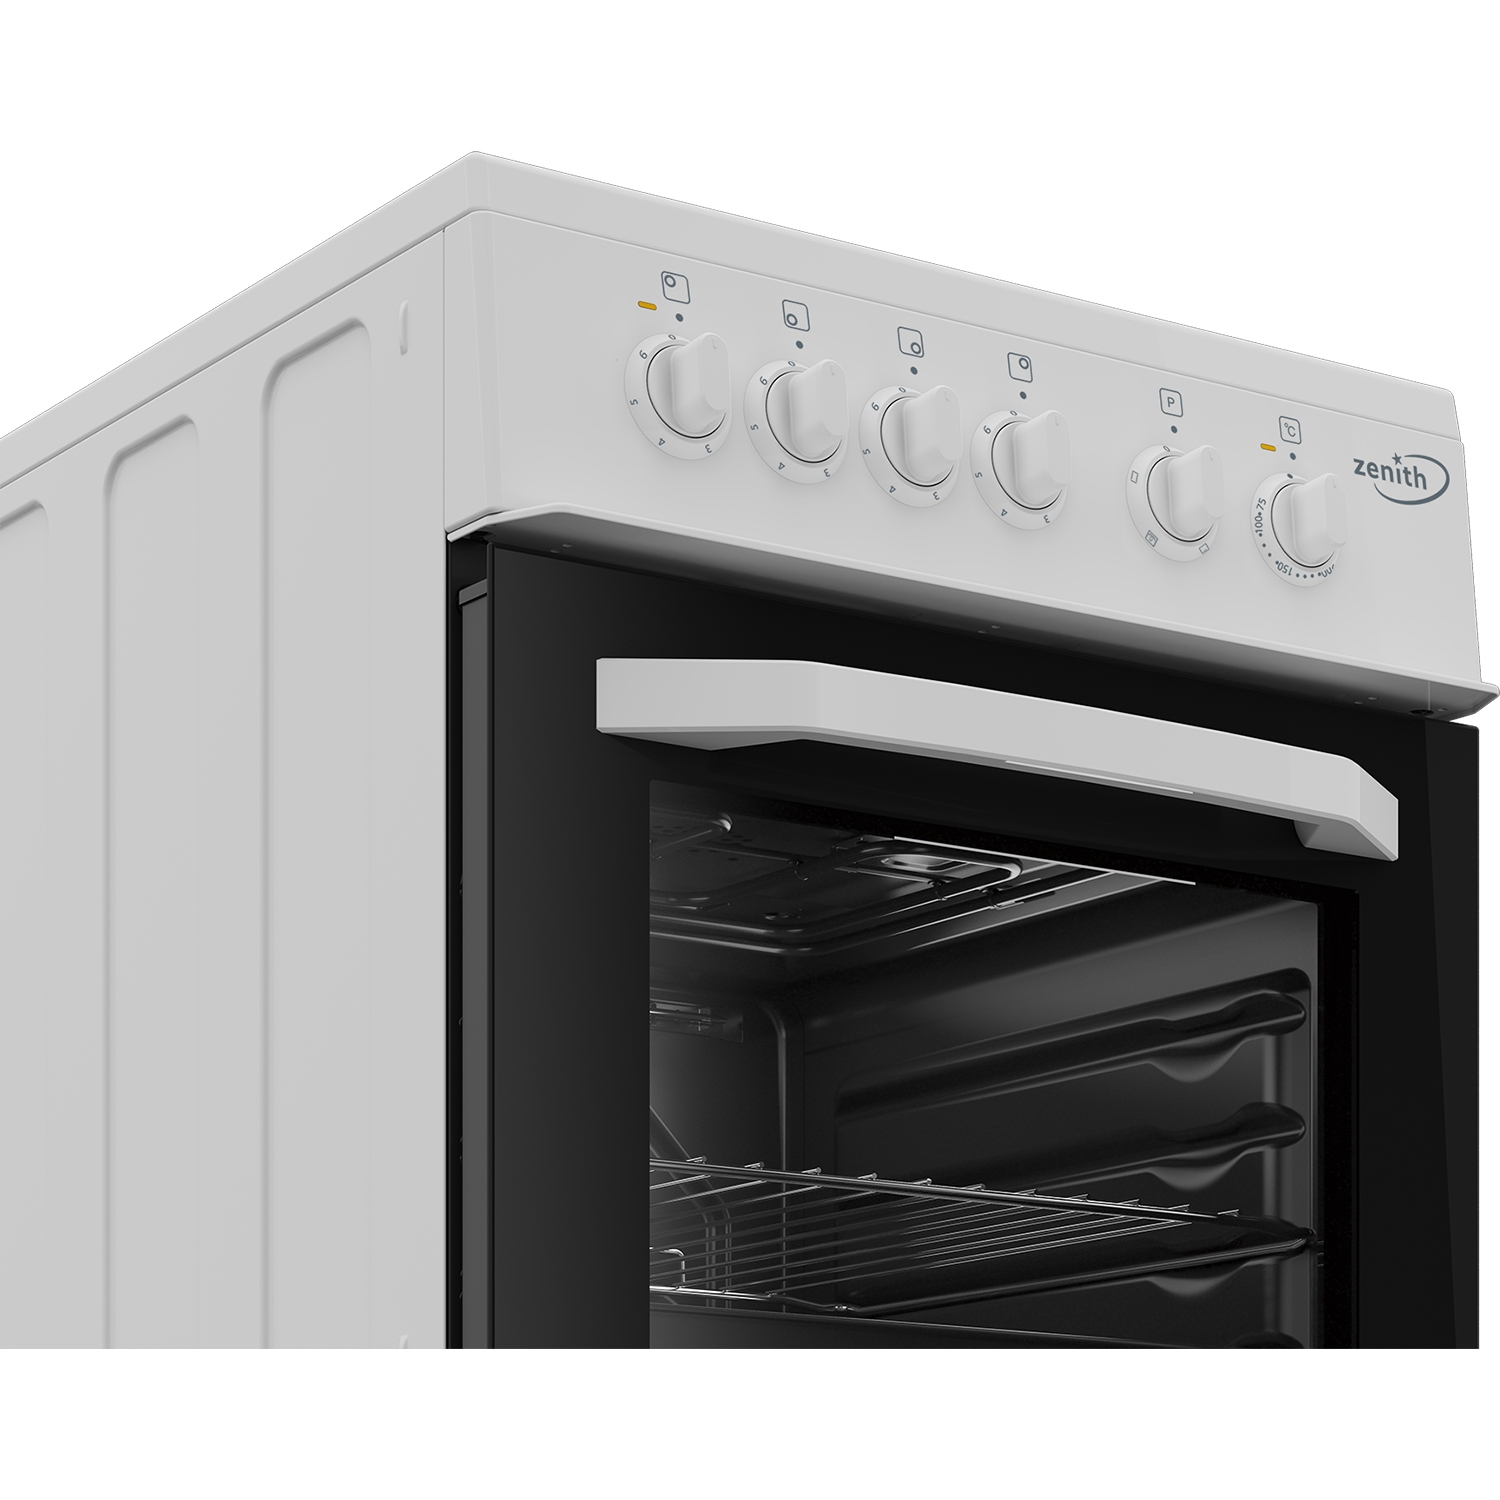 Zenith 50cm Single Oven Electric Cooker with solid plate - hob White- A Energy Rated - 3